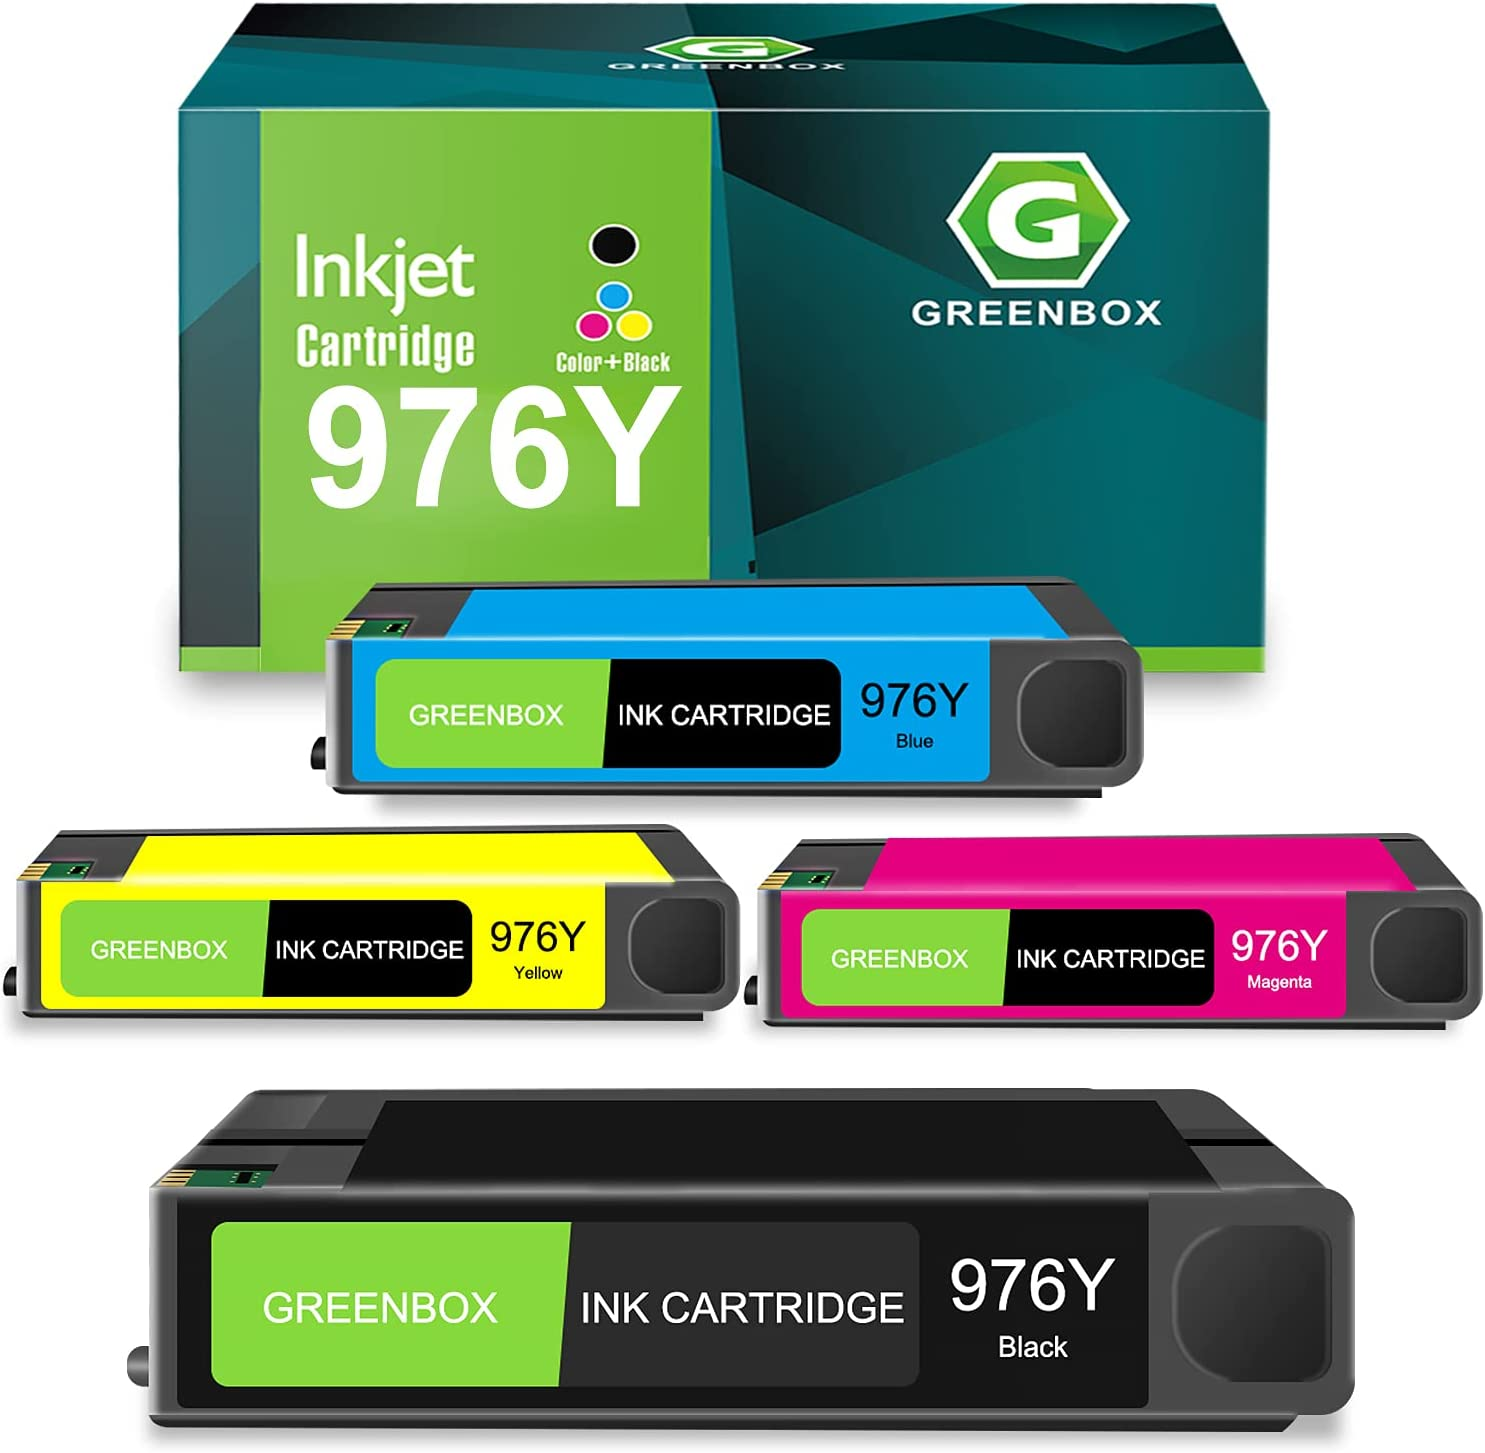 GREENBOX Remanufactured Ink Cartridge Replacement for HP 976Y 976Y for HP PageWide Pro 552dw 577dw MFP Printer 577z MFP Printer(1 Black 1 Cyan 1 Magenta 1 Yellow)